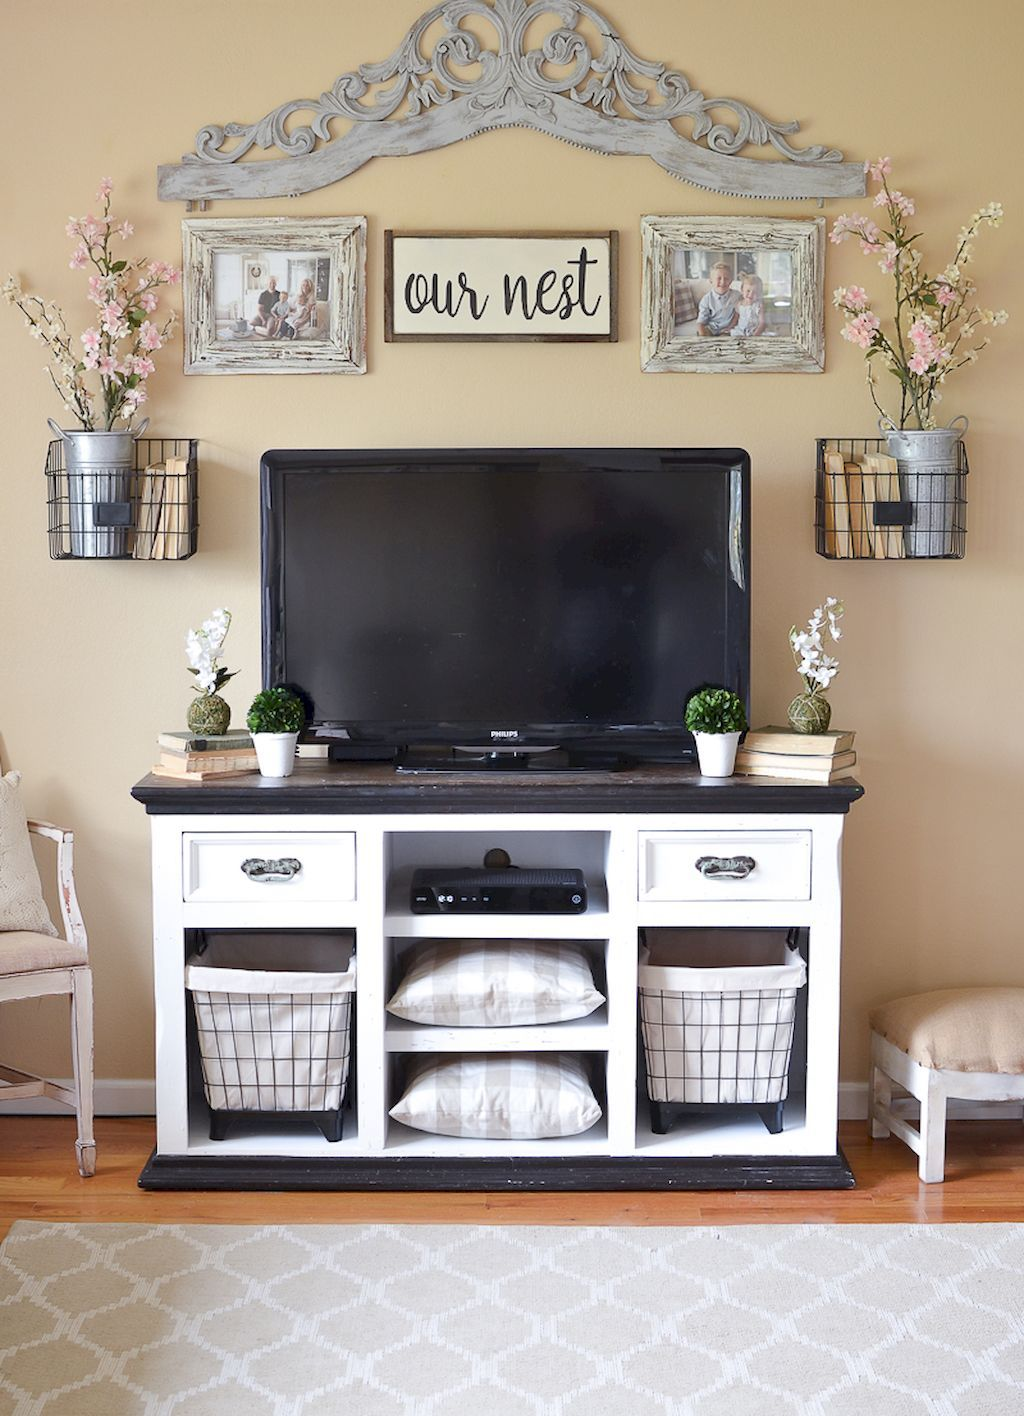 40 First Apartment Decorating Ideas on a Budget | Apartments ...